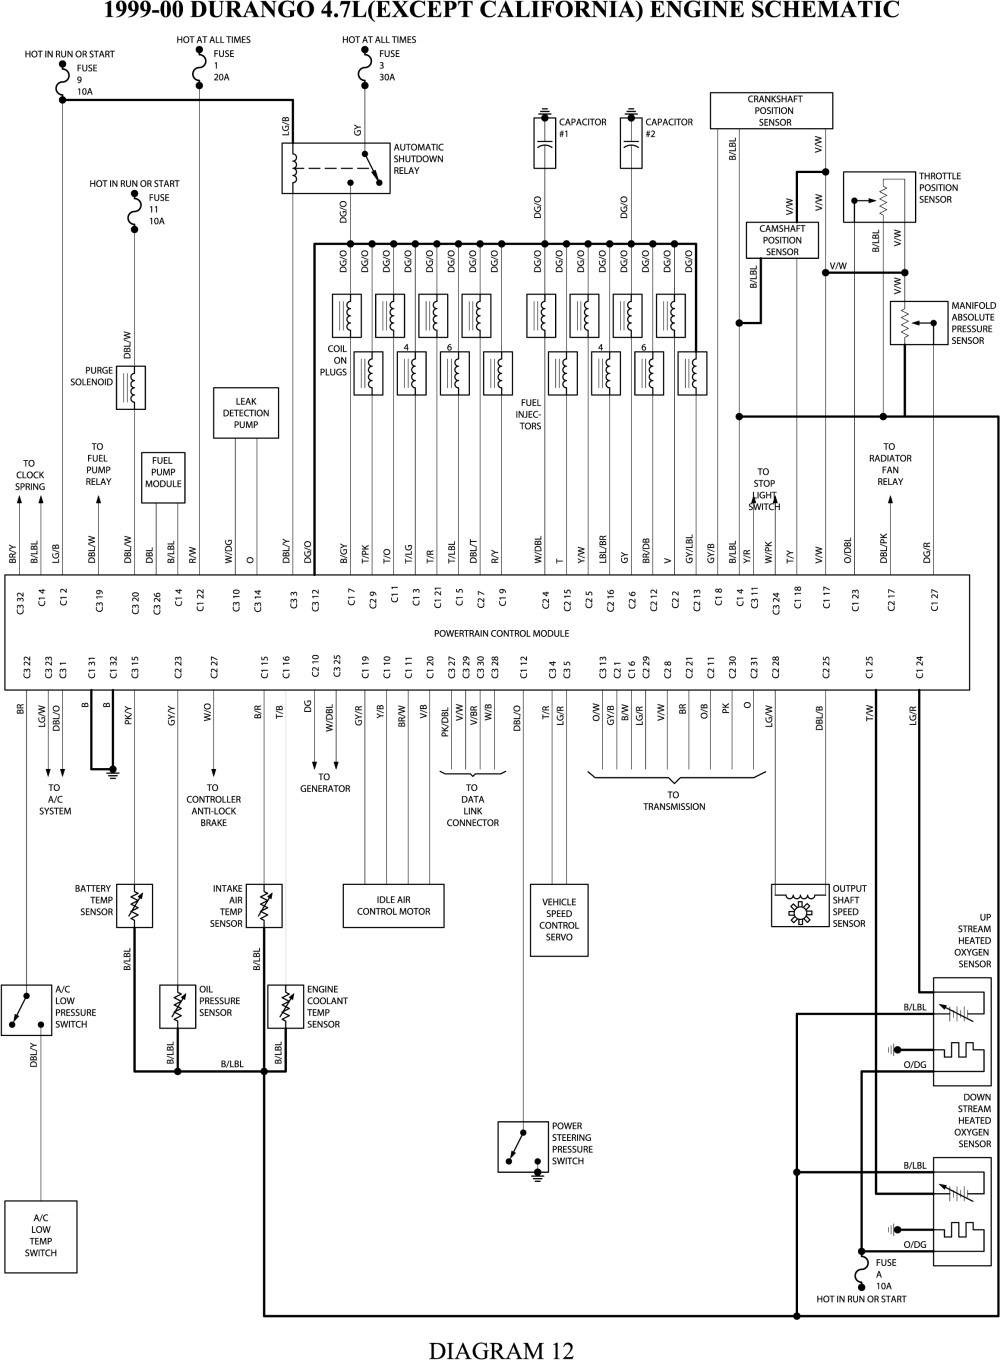 1999 Dodge Durango Wiring Diagram